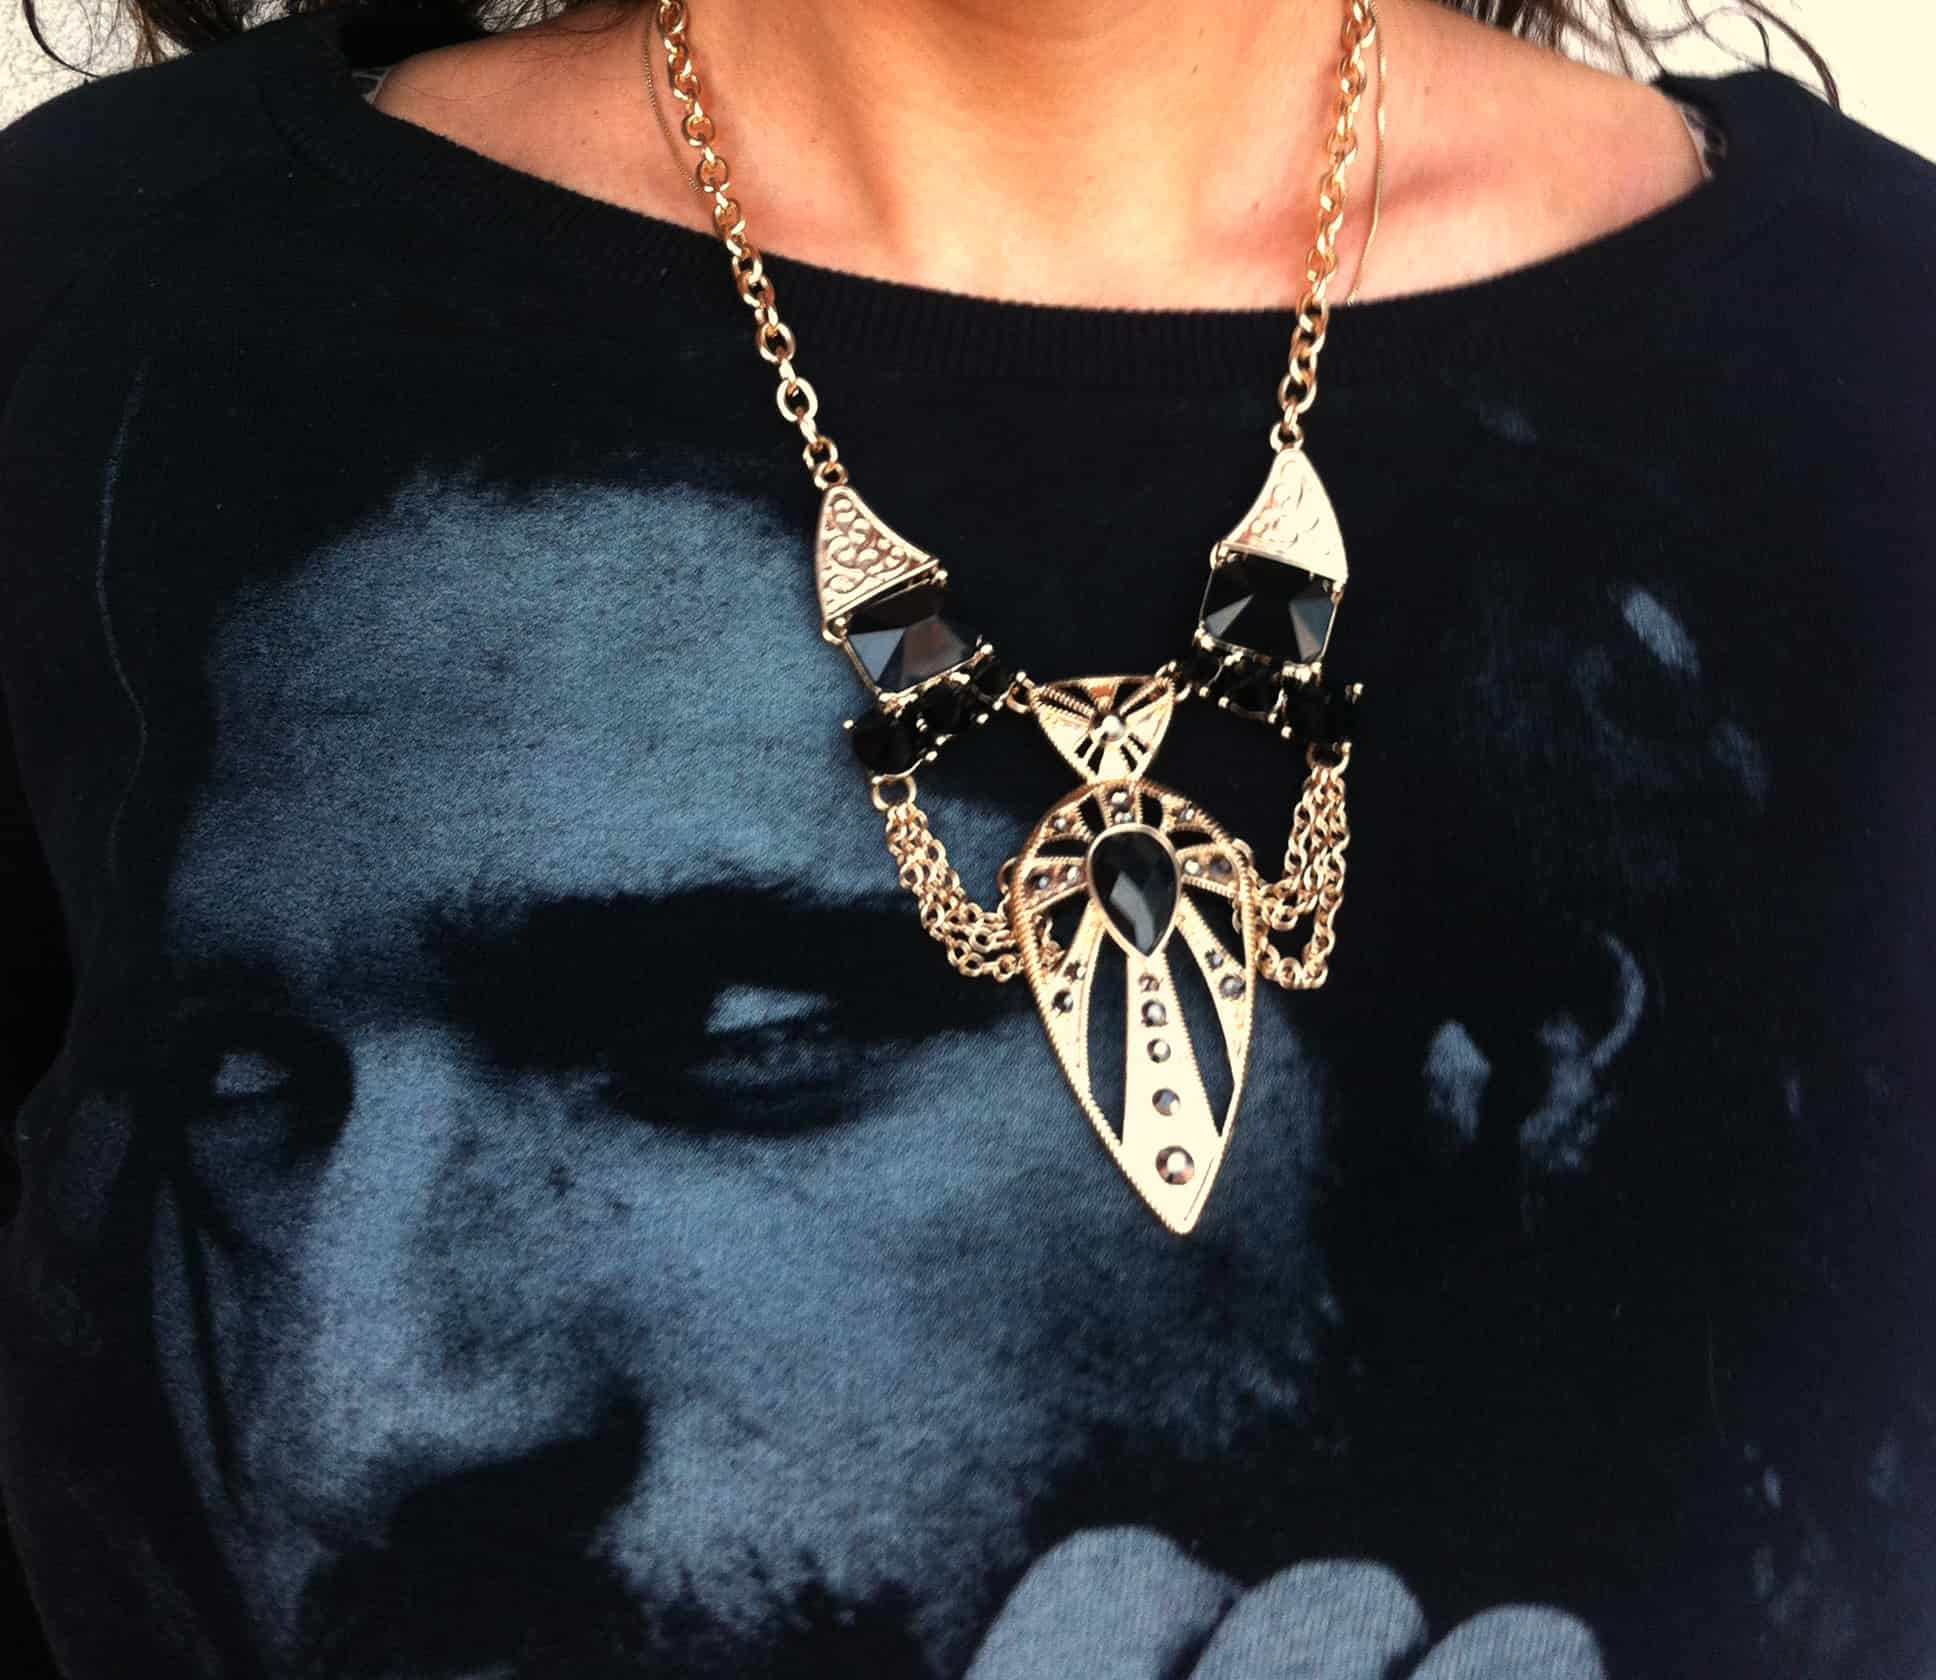 ringsandtings statement necklace fashiontag Bling It Up! The Hidden Power Of Statement Jewellery